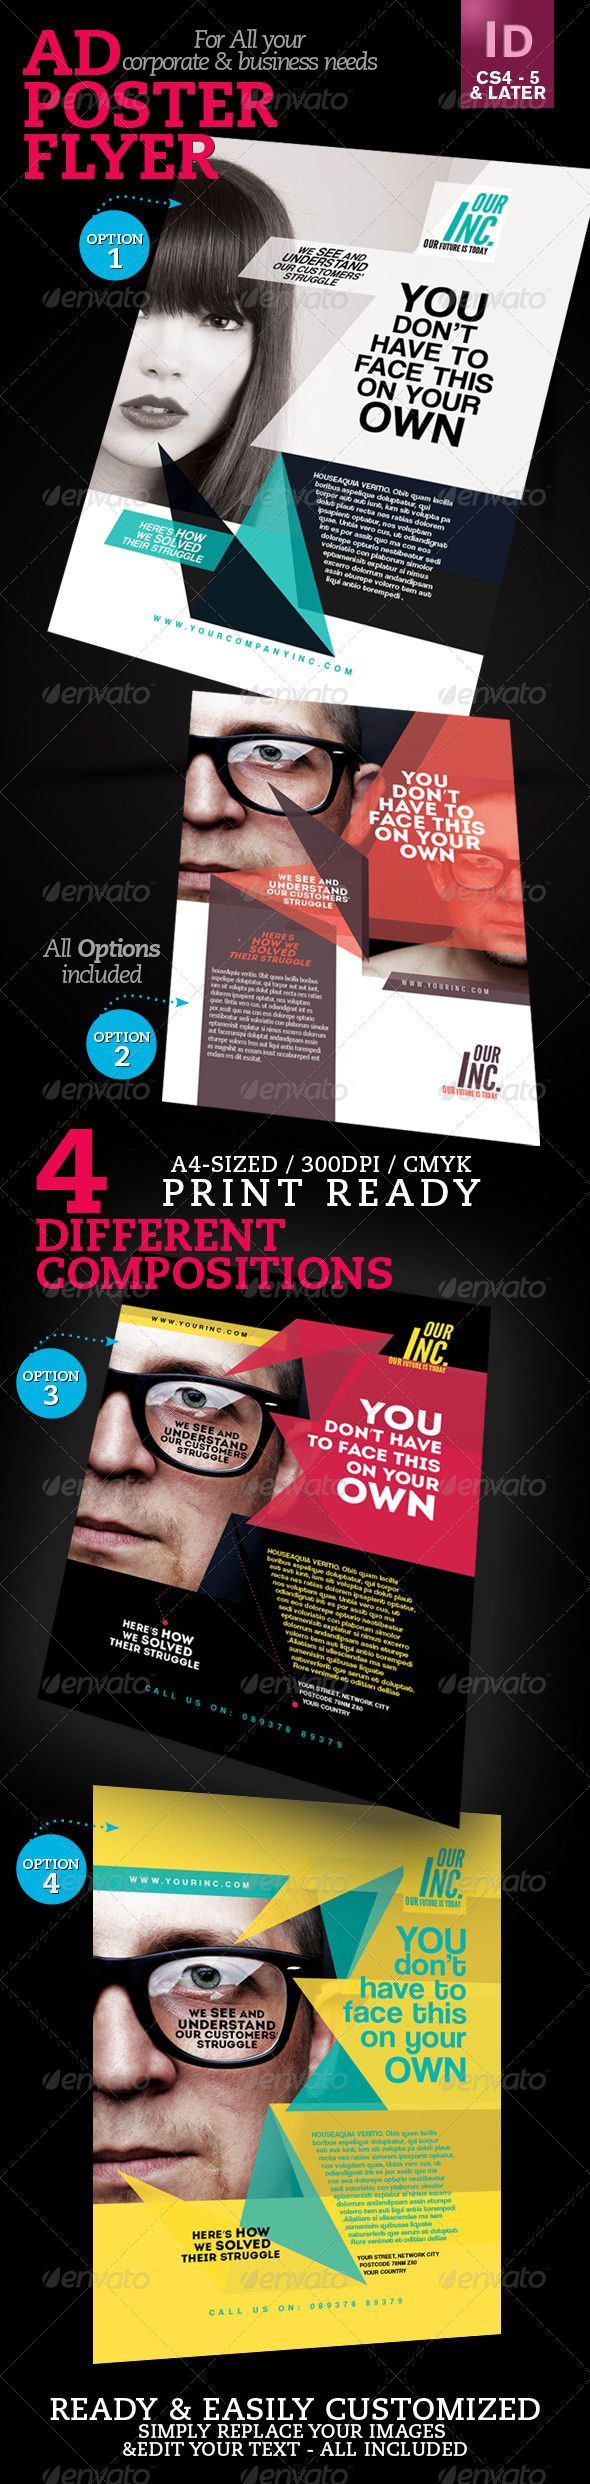 Corporate Ad / Flyer / Poster V1 - GraphicRiver Item for Sale